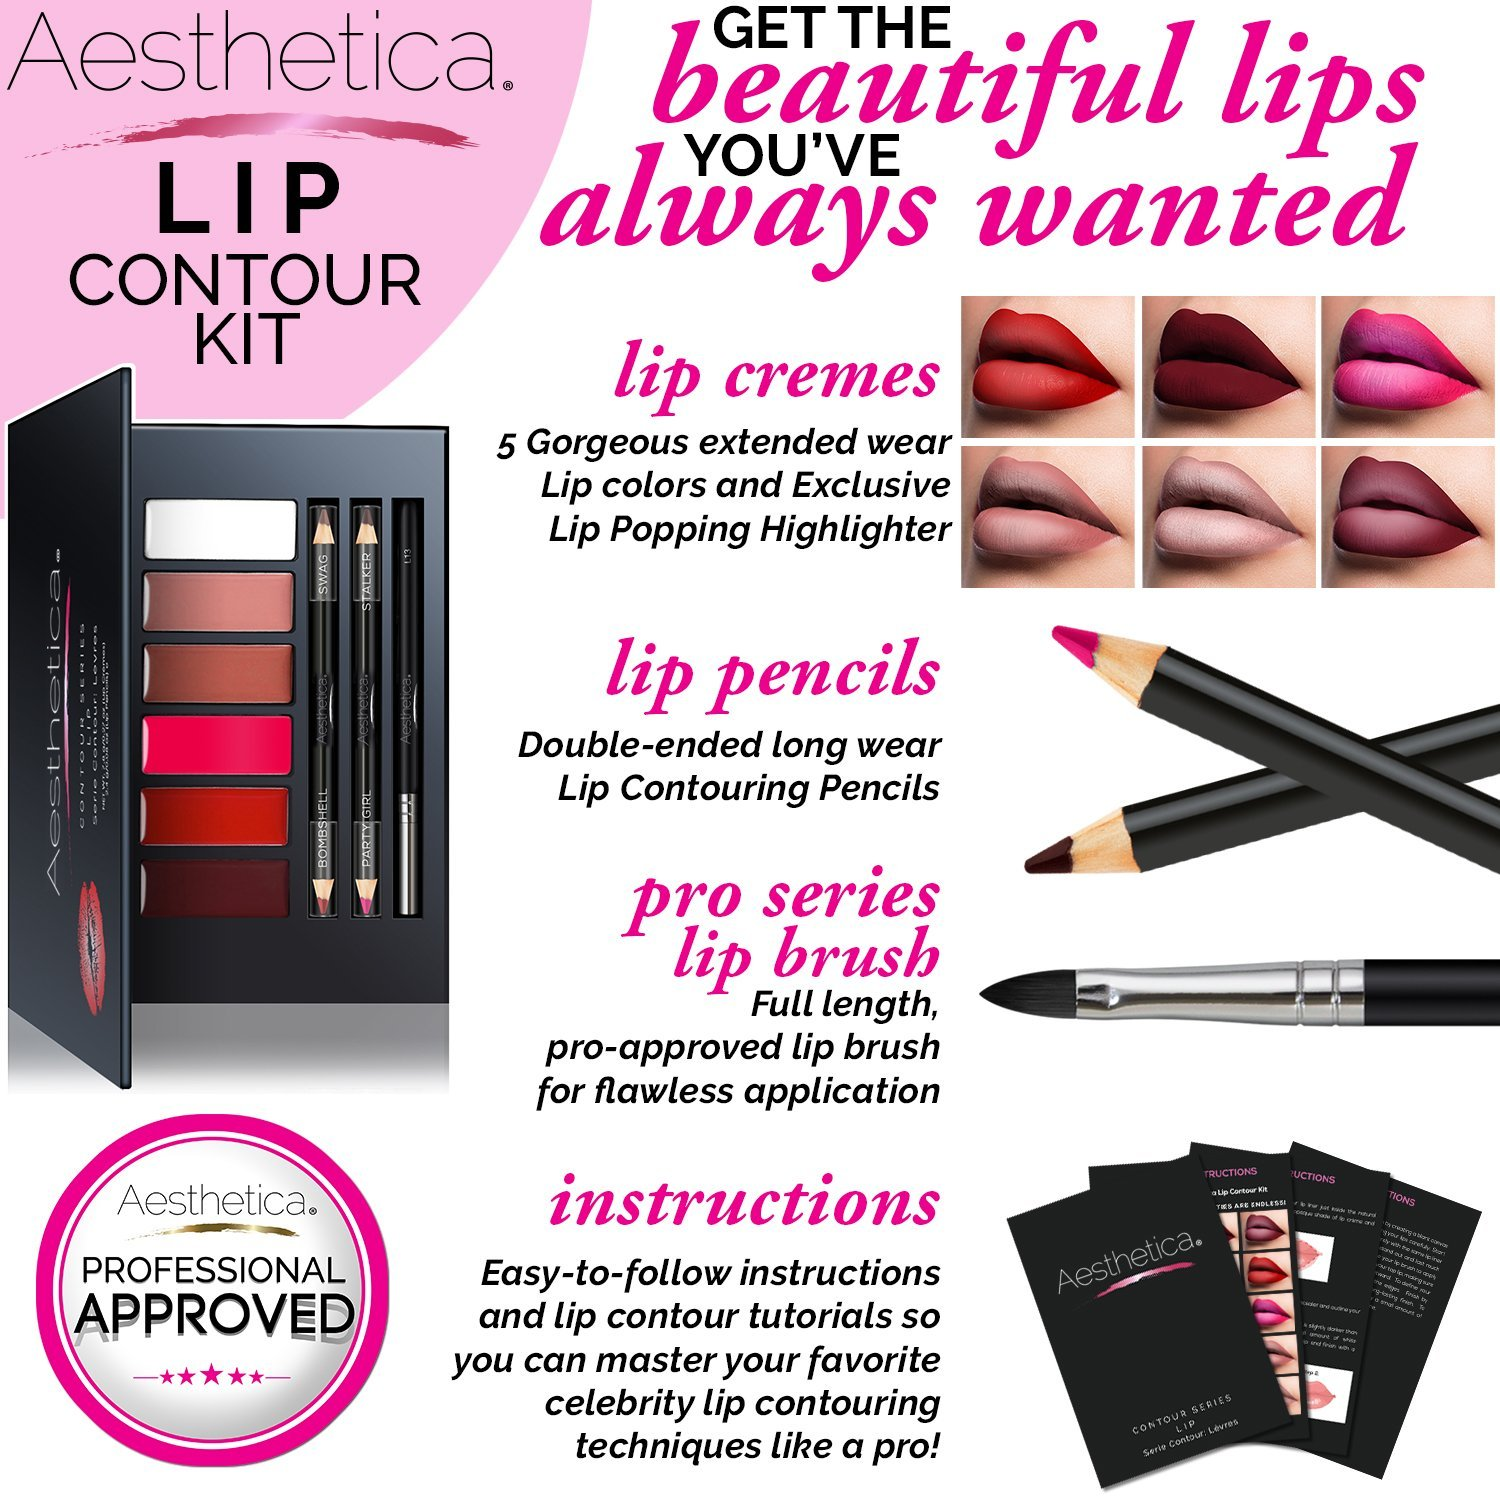 Aesthetica Matte Lip Contour Kit - Lipstick Palette Set Includes 6 Lip Colors, 4 Lip Liners, Lip Brush and Instructions by Aesthetica (Image #5)